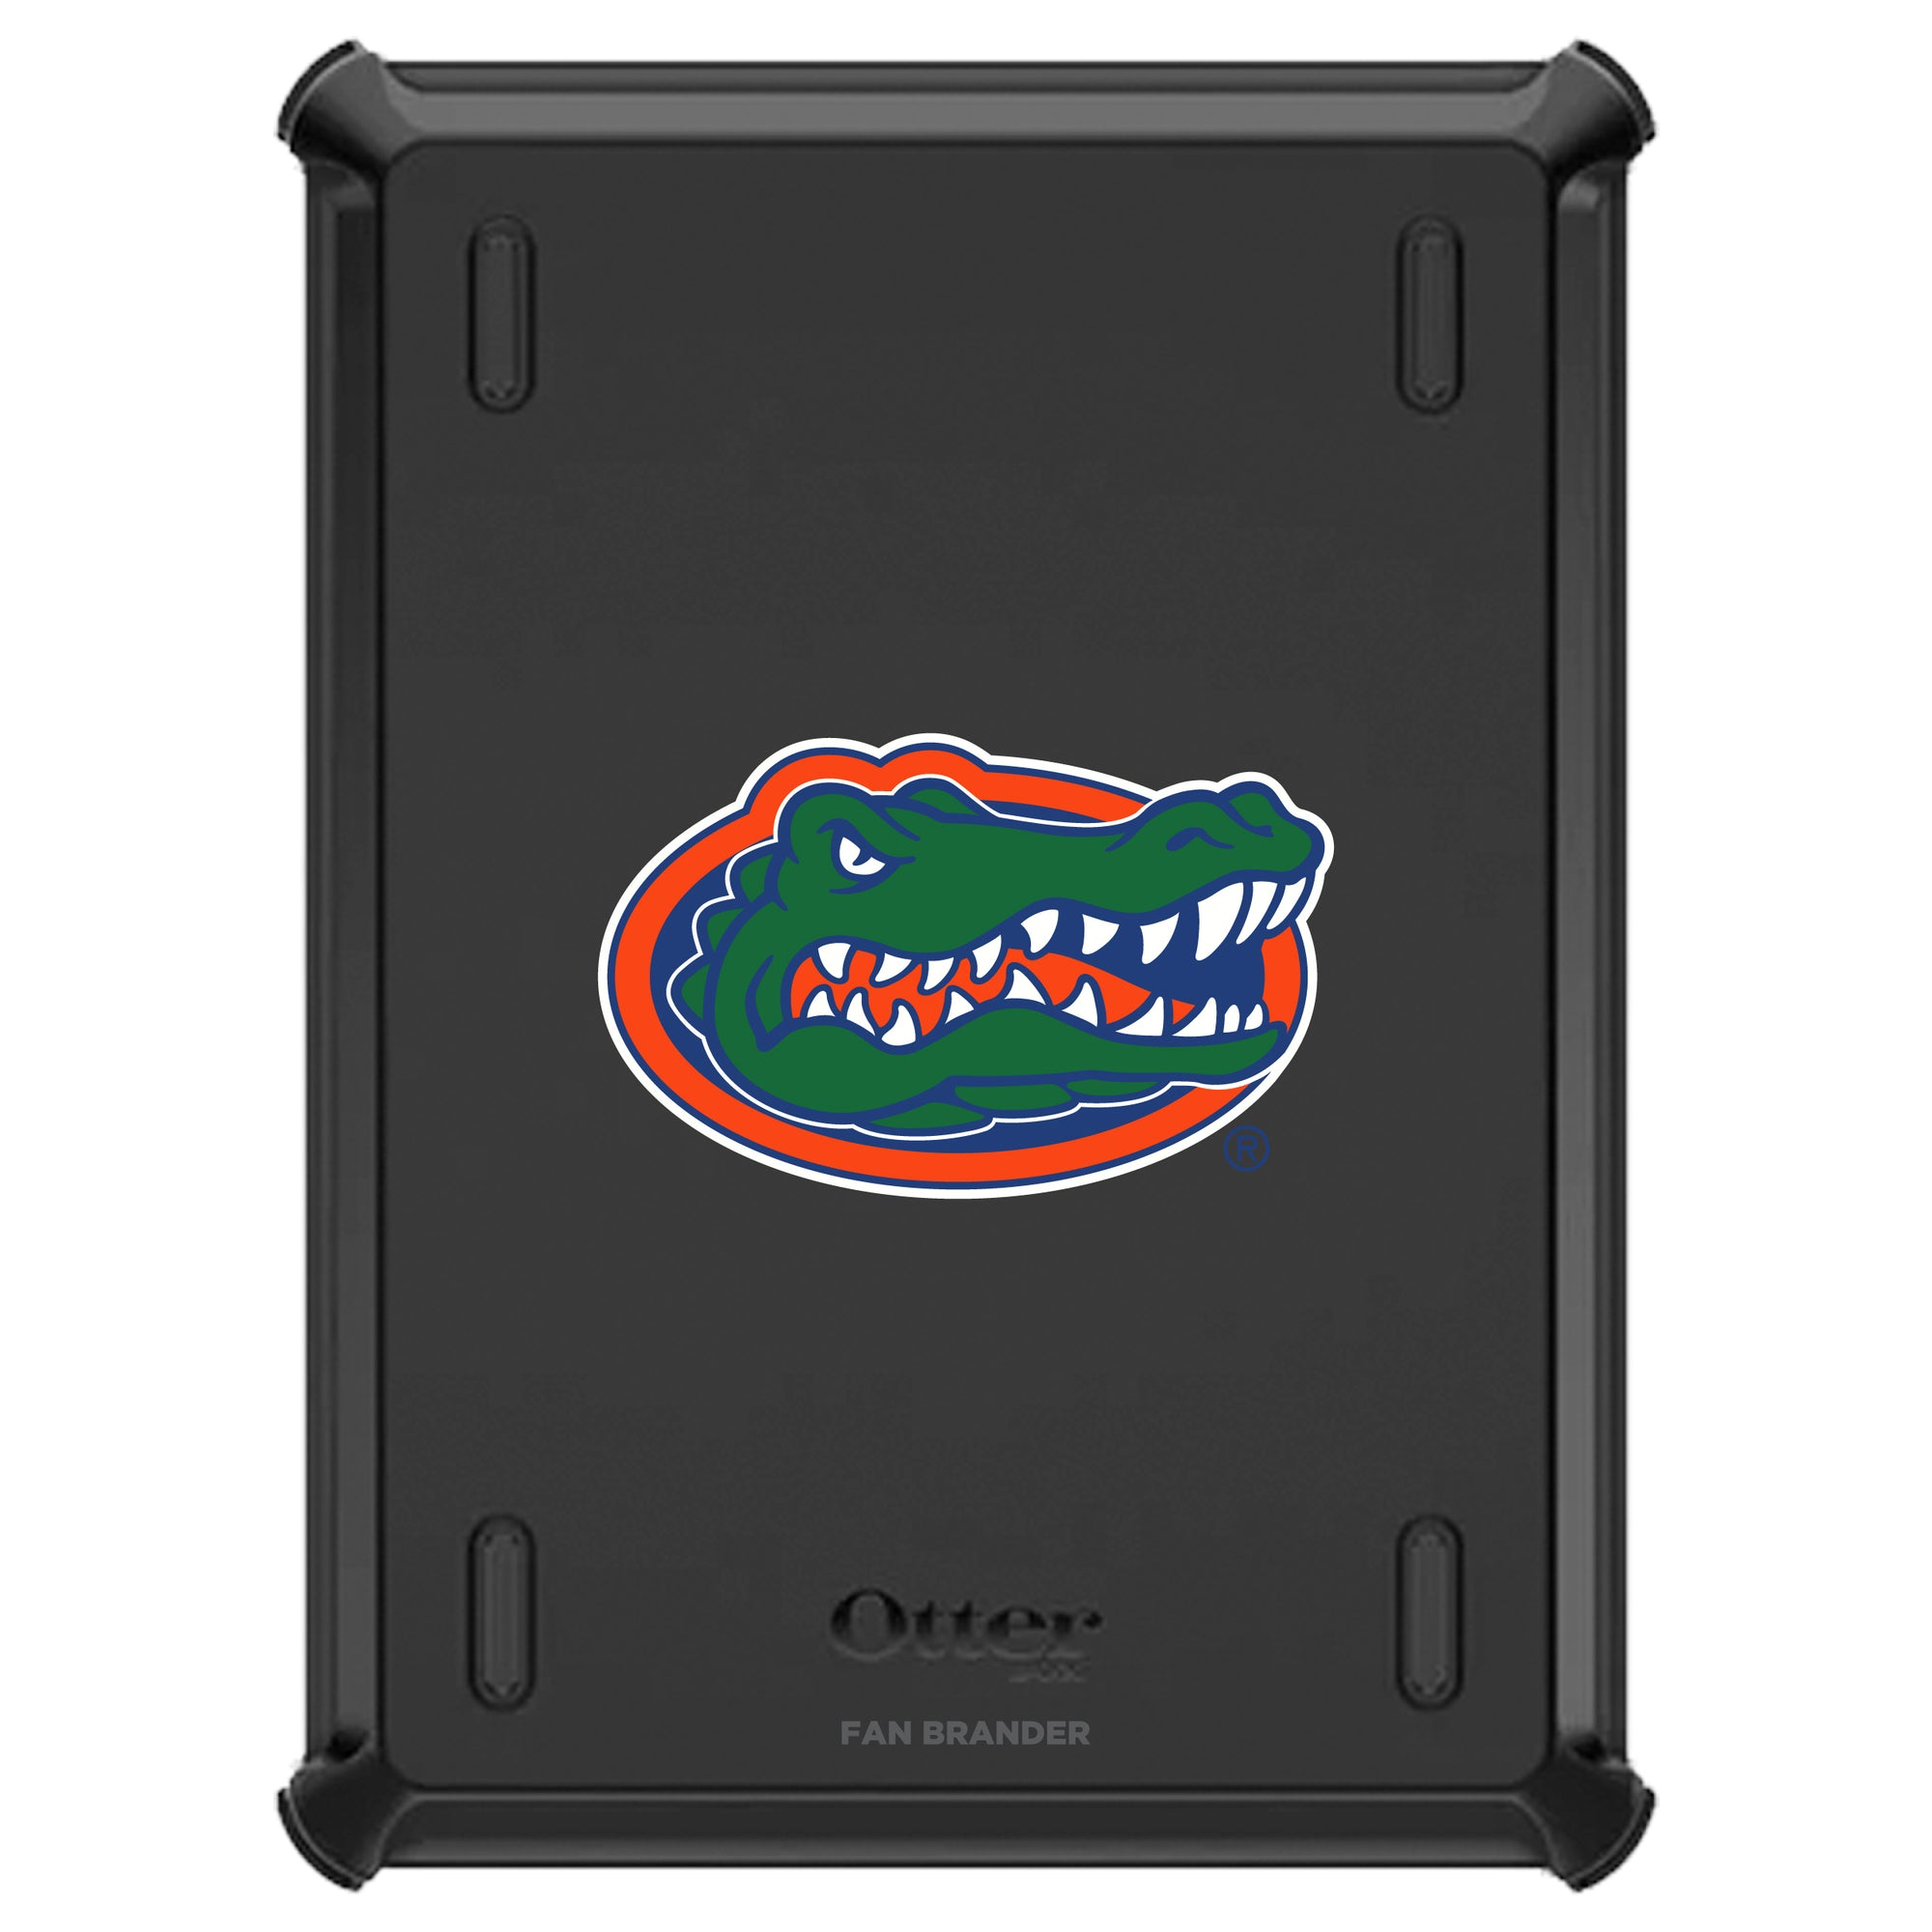 Florida Gators Otterbox Defender Series for iPad mini (5th gen)